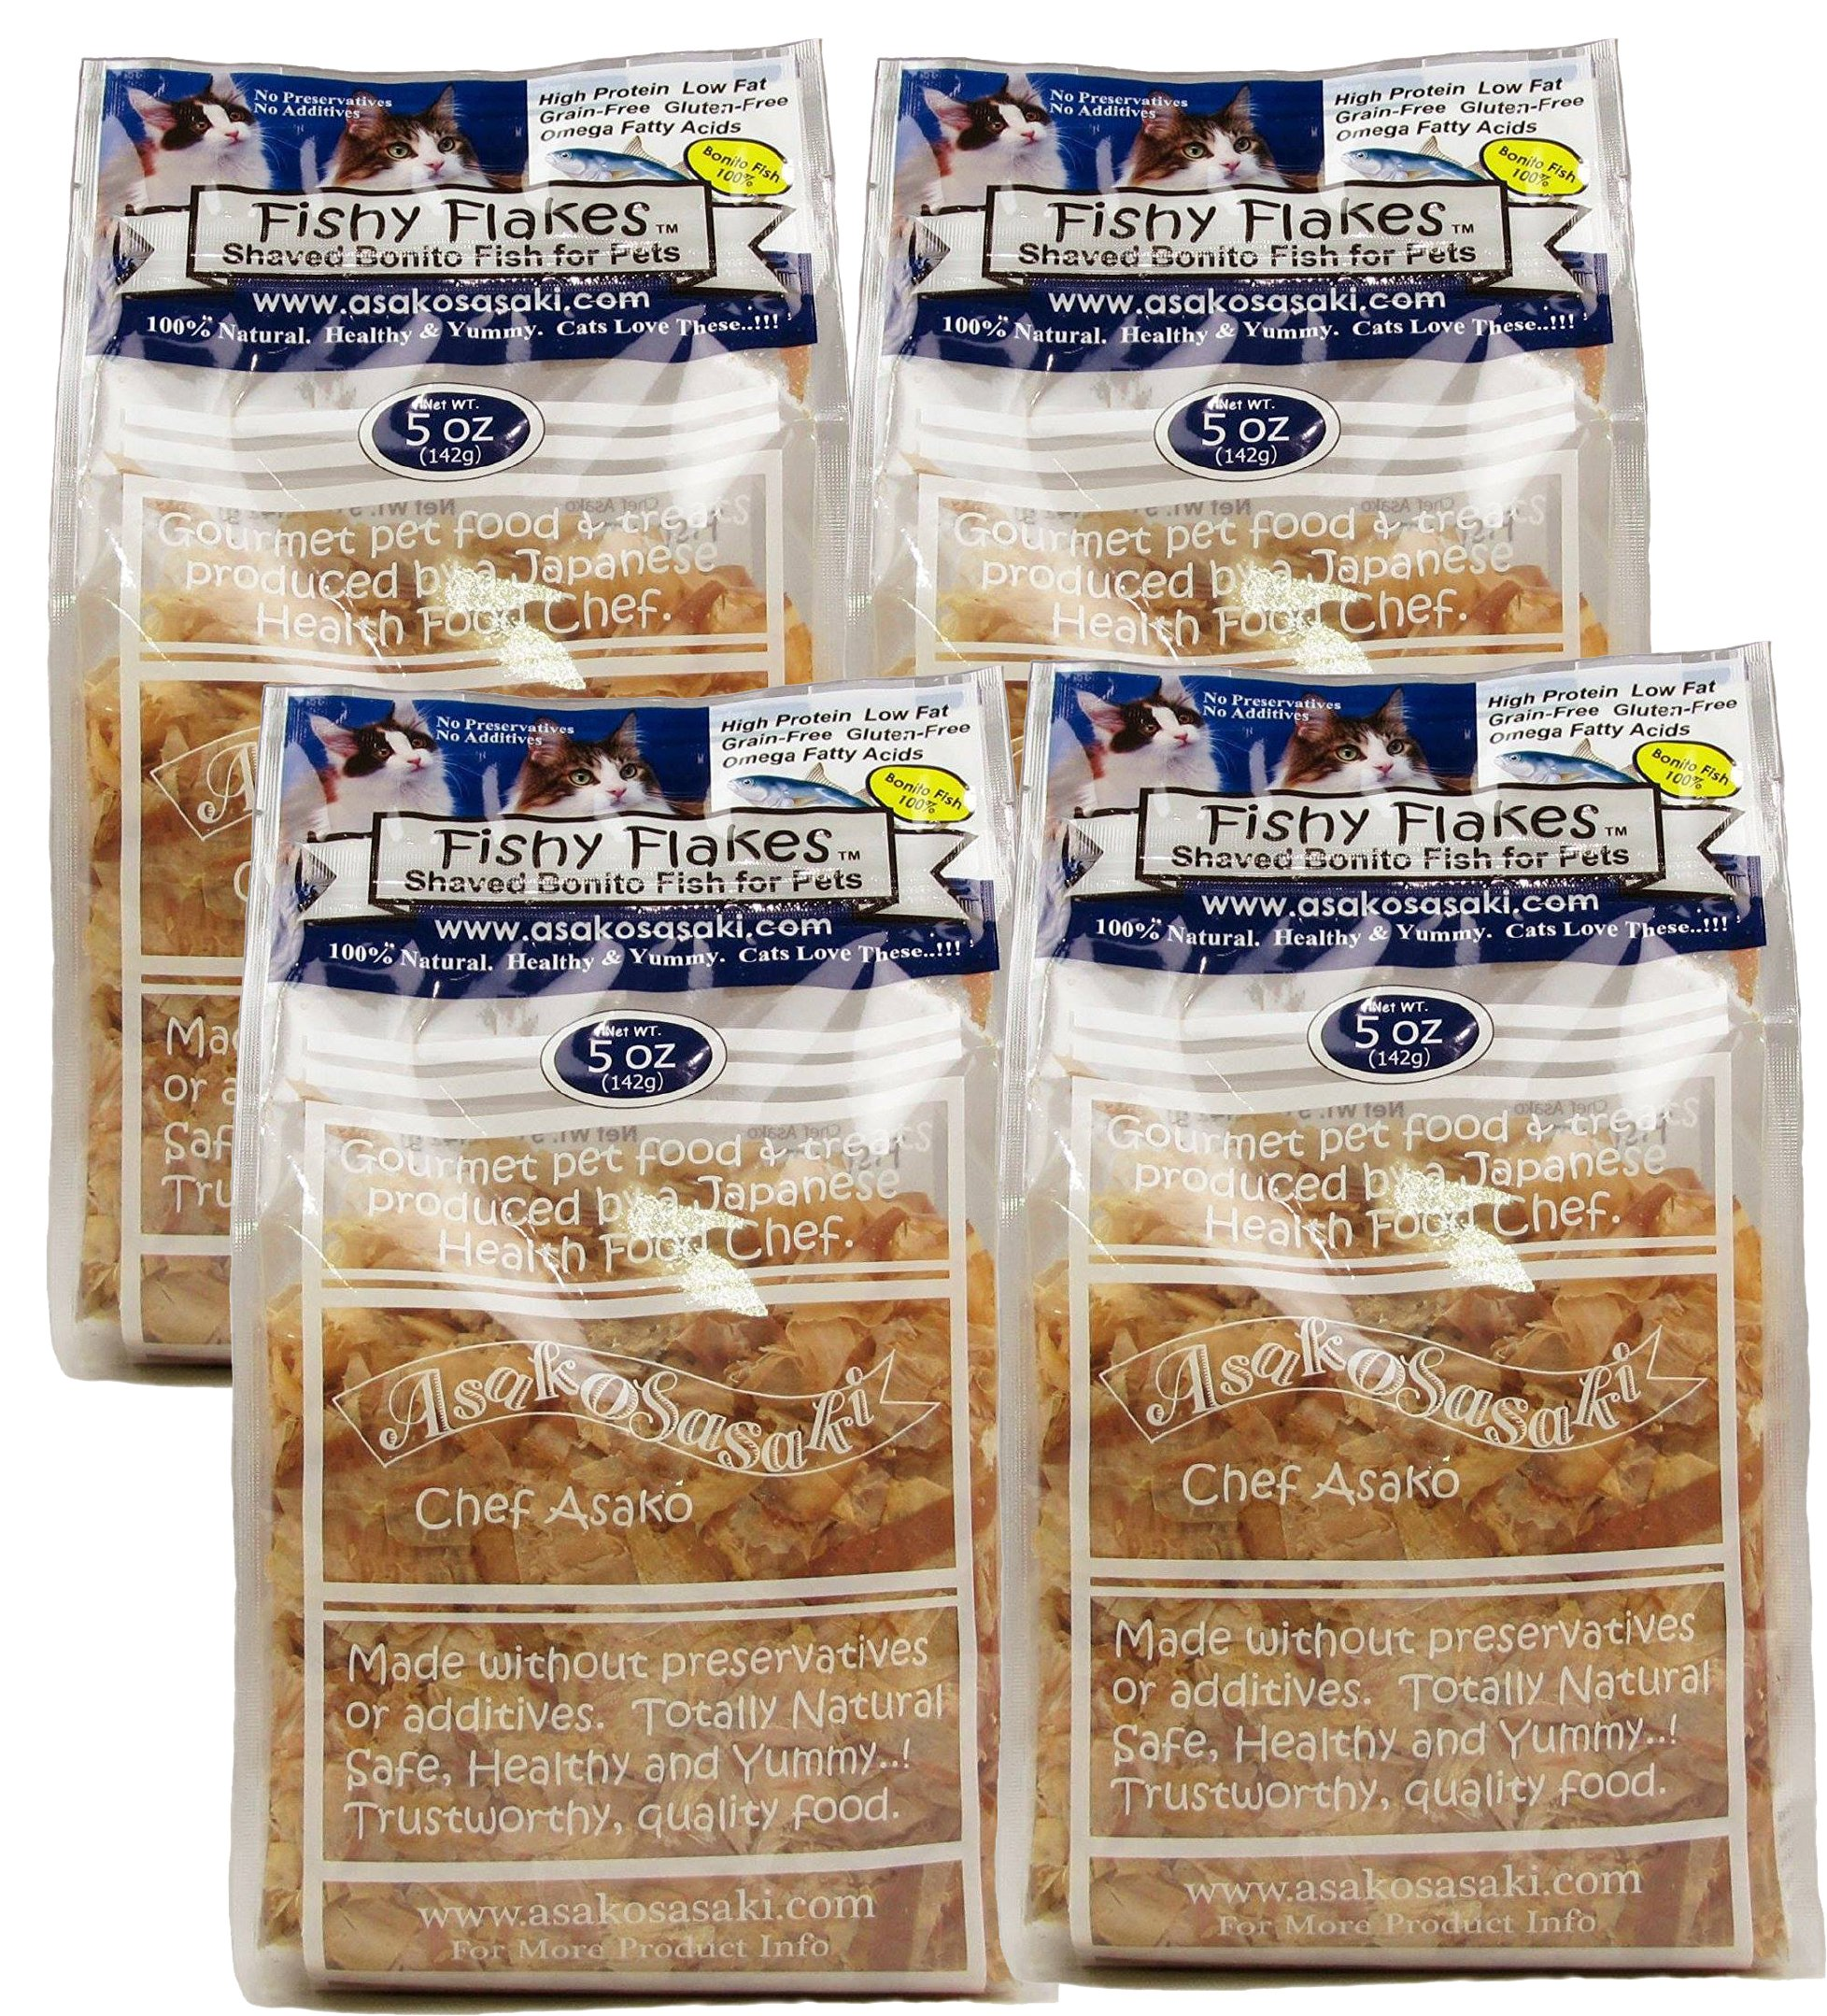 FISHY FLAKES Case of 4 Units (Total 1.25 lbs.) - Extra Large Strips Bonito Flakes - Chef Asako - 100% Bonito Fish - Zipper Standing Bag - No Preservatives - Taurine from Natural Fish - High Protein by FISHY FLAKES